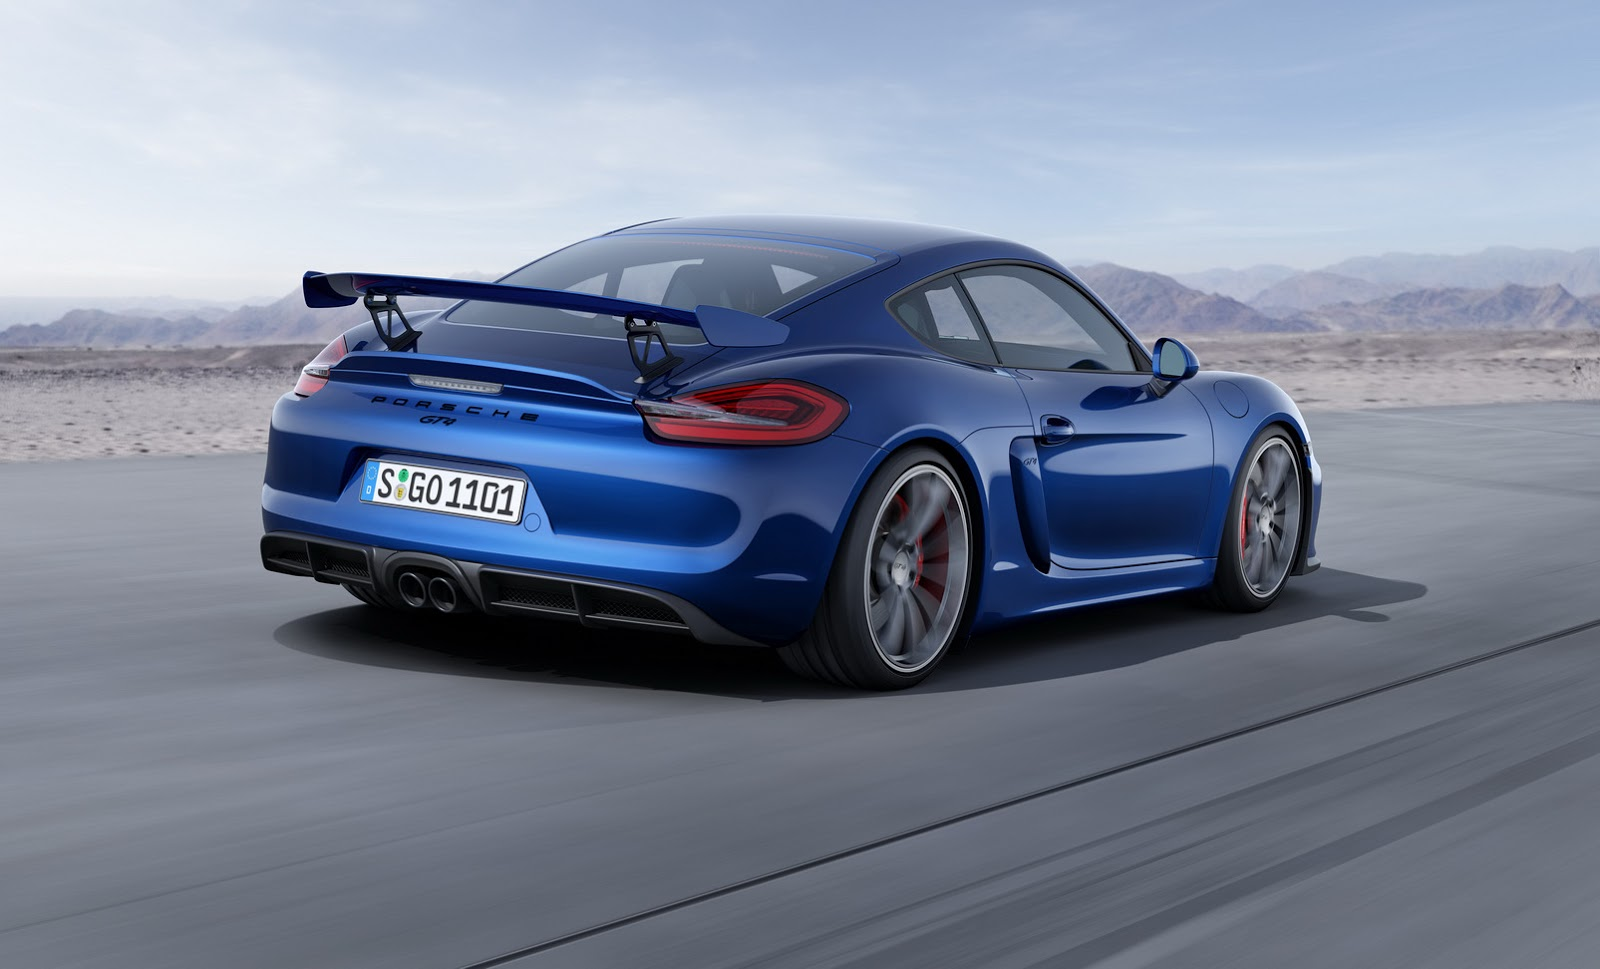 Cars All Models List >> Porsche Reveals New Cayman GT4 with 380HP, Priced from $84,600*